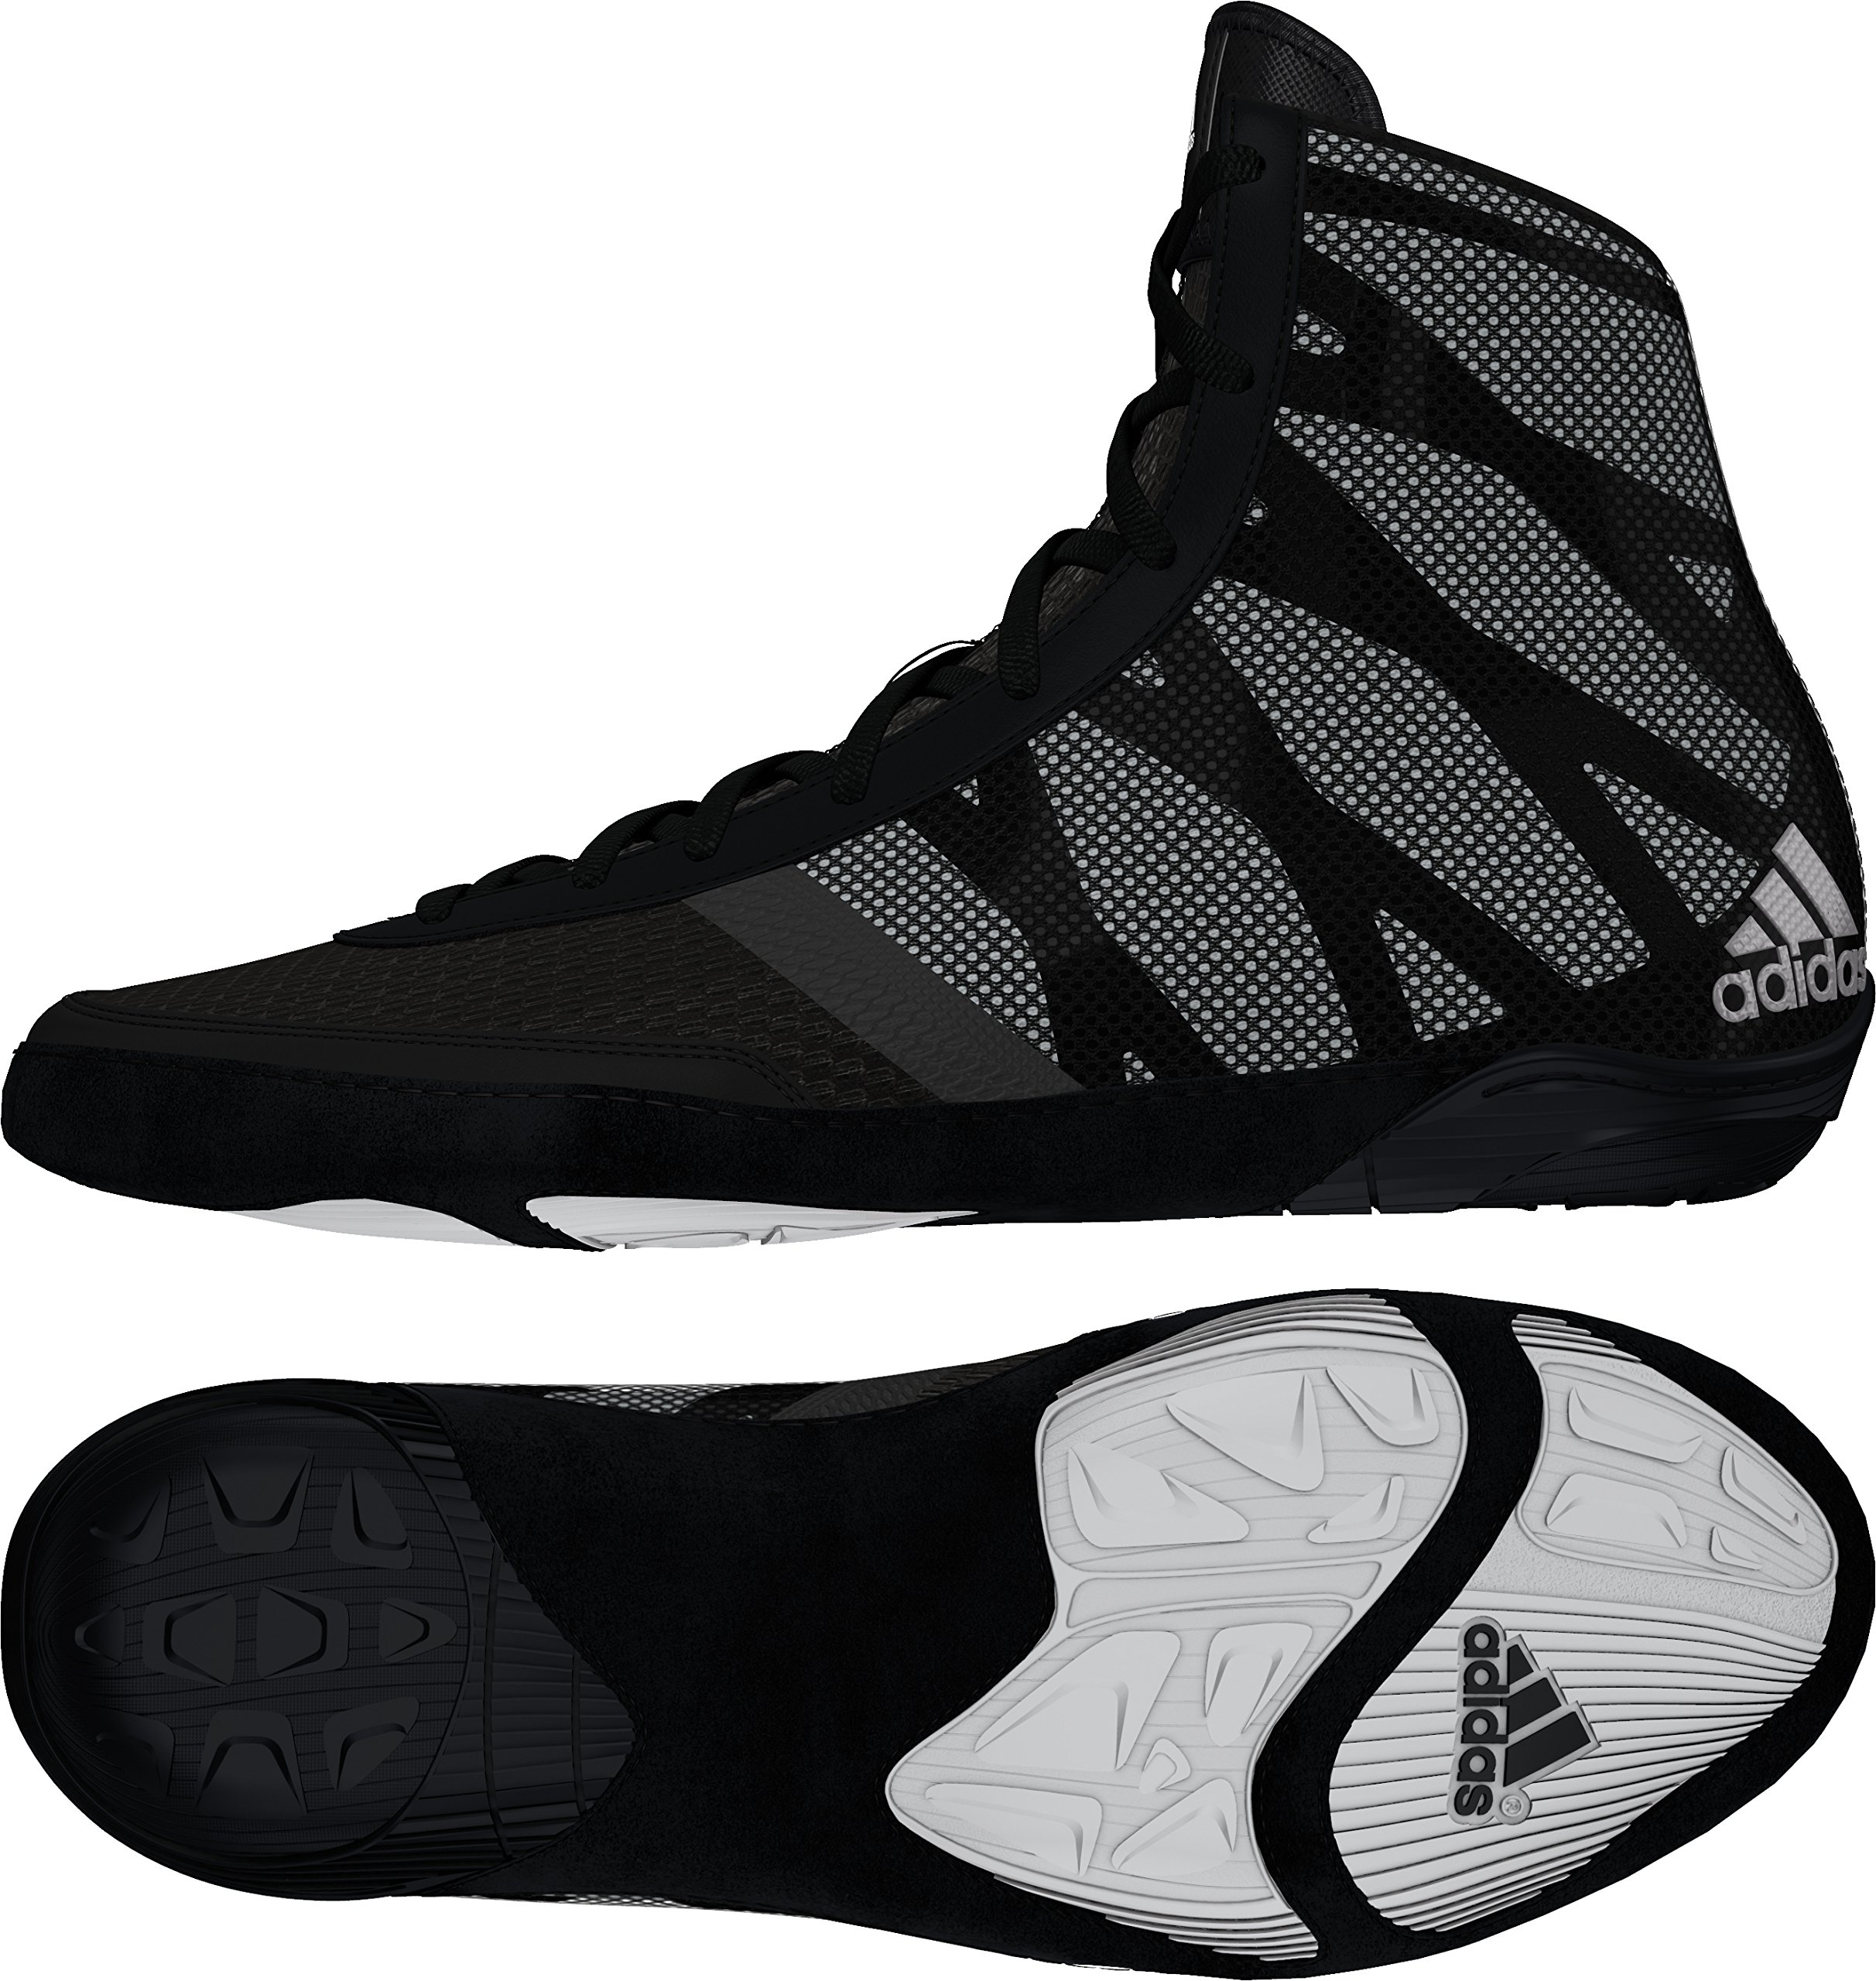 Adidas Pretereo III Wrestling Shoes - Black/Silver/White - 9.5 by adidas